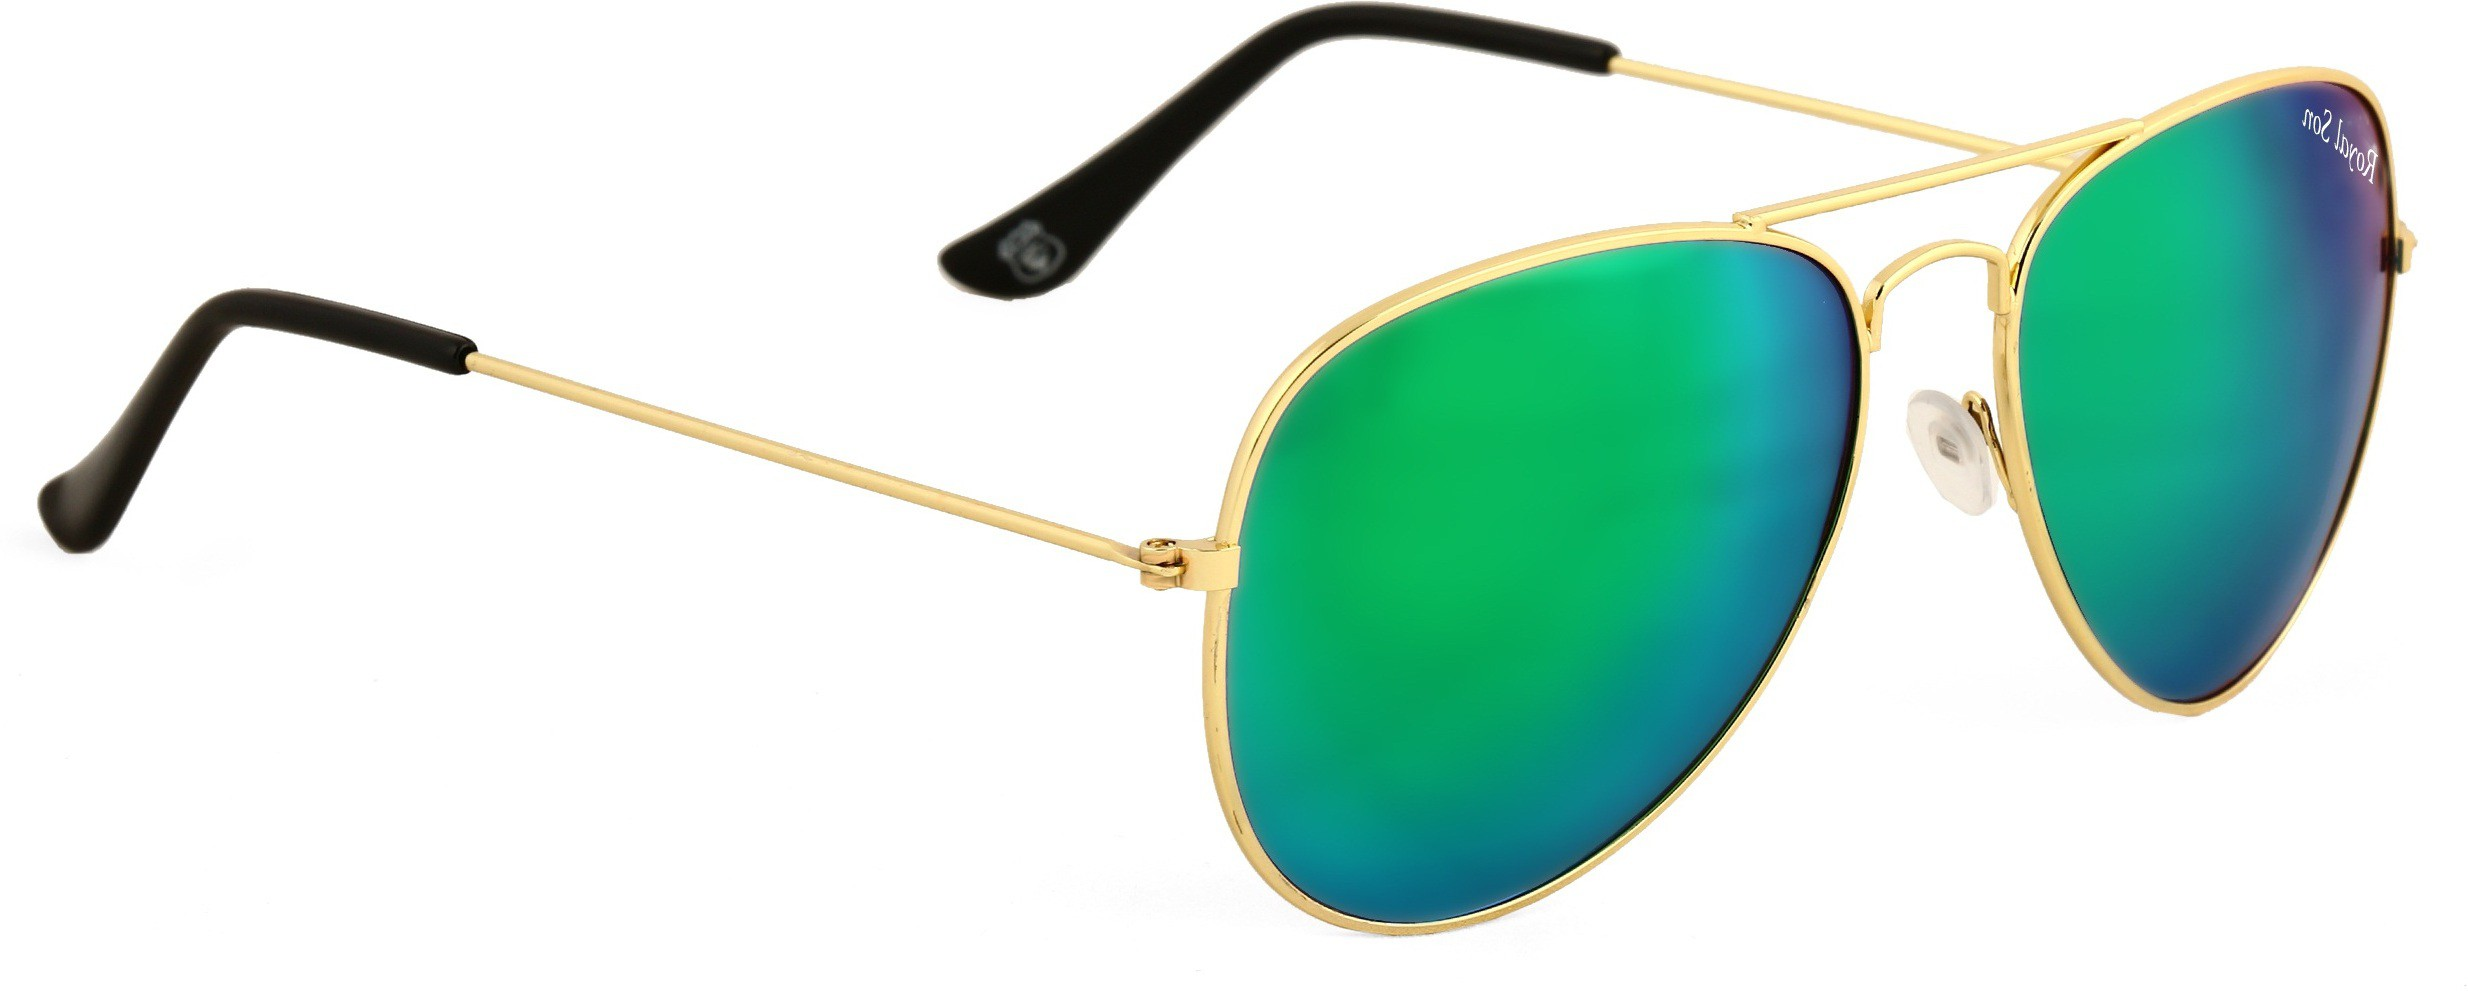 Deals - Delhi - Danny Daze... <br> Sunglasses<br> Category - sunglasses<br> Business - Flipkart.com